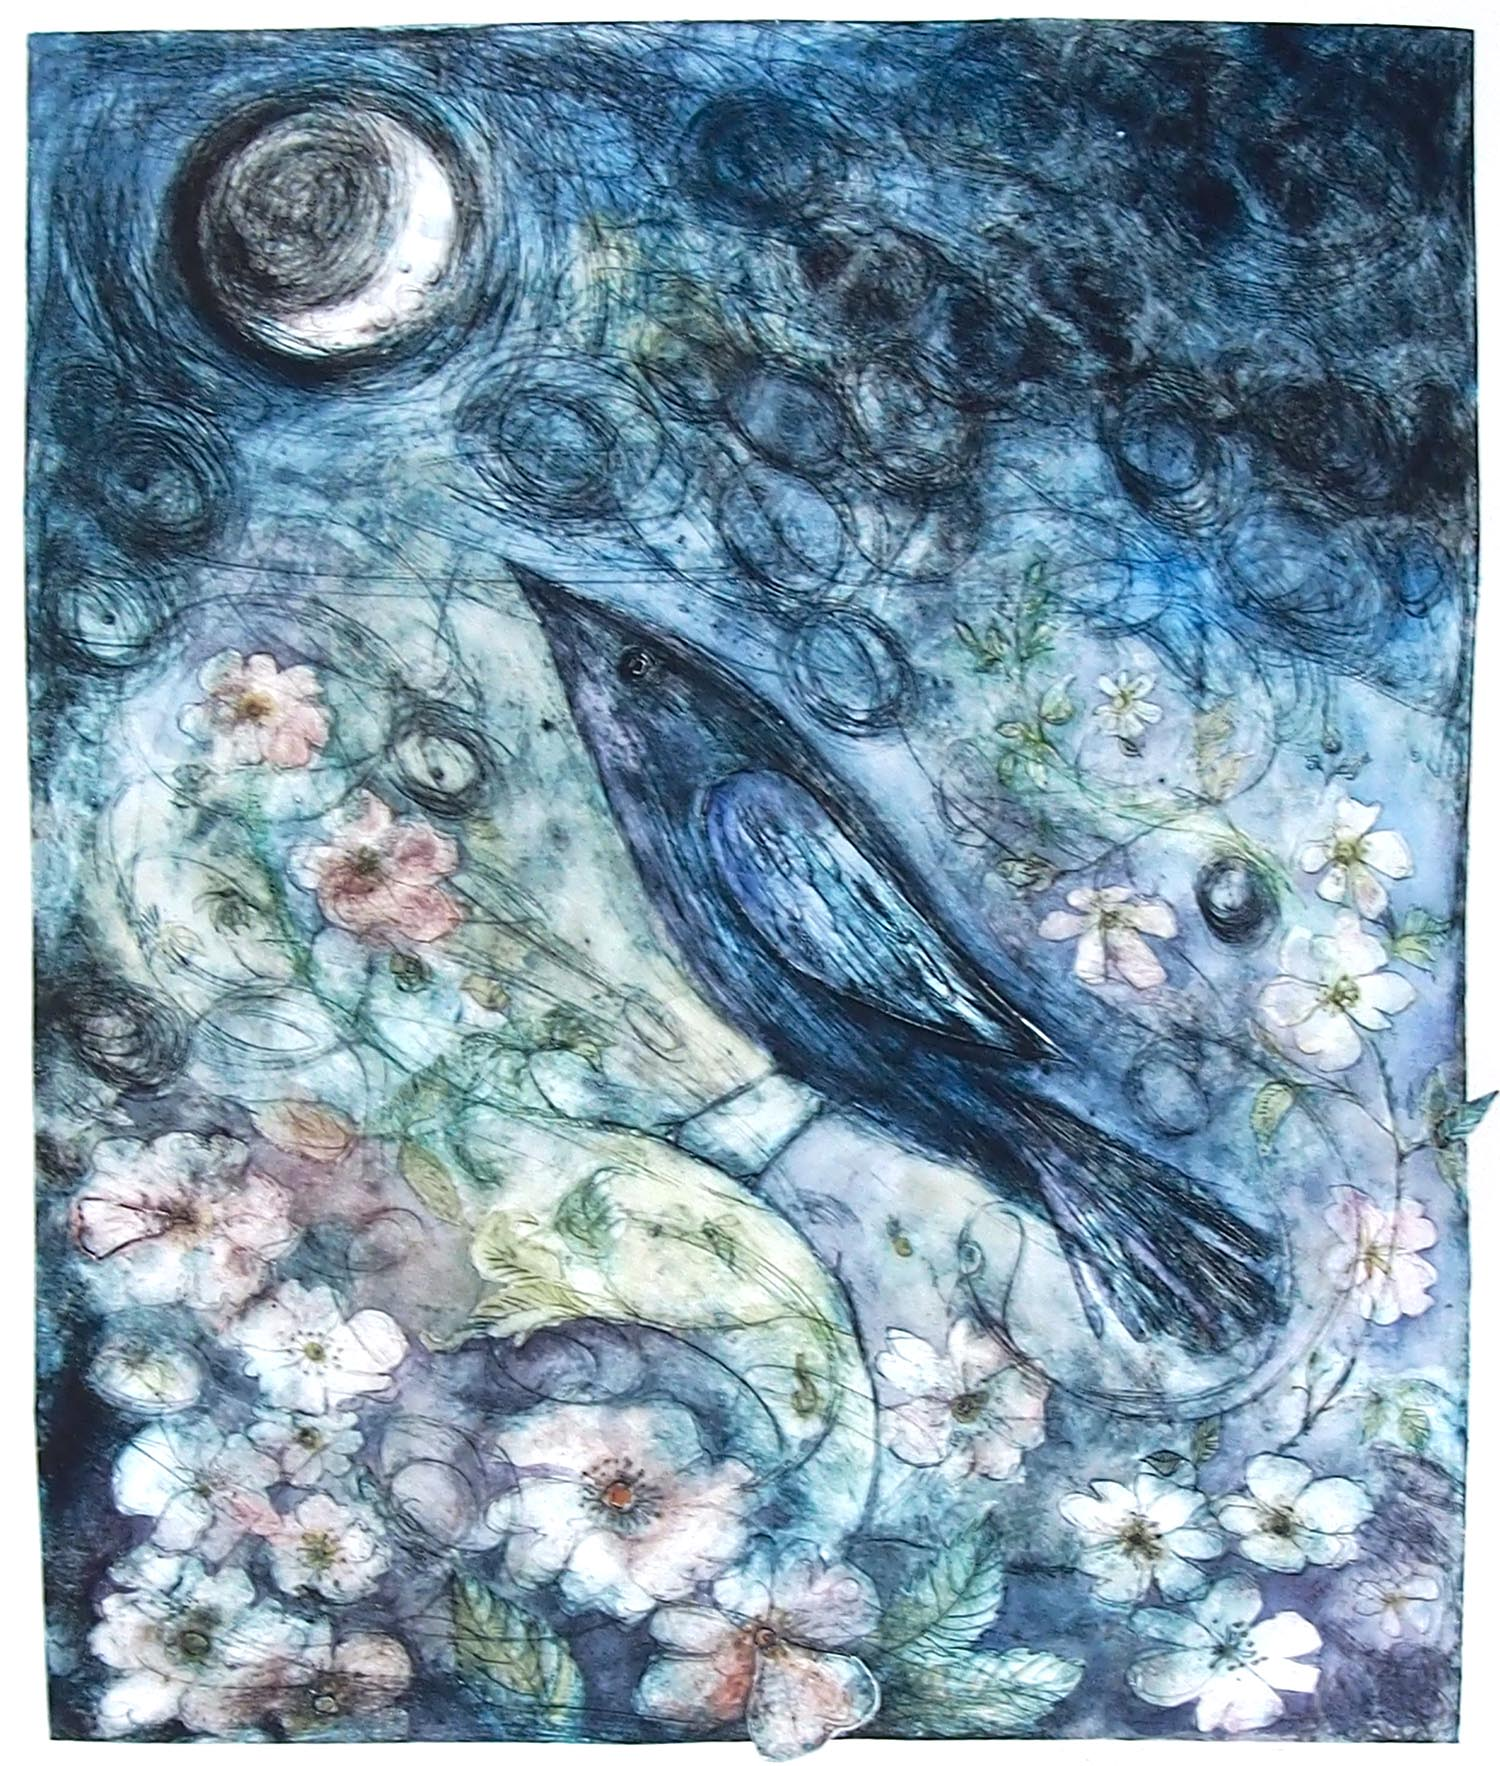 Grey Moon Bird - handcoloured drypoint image 50x41cm framed 63x74cm £240